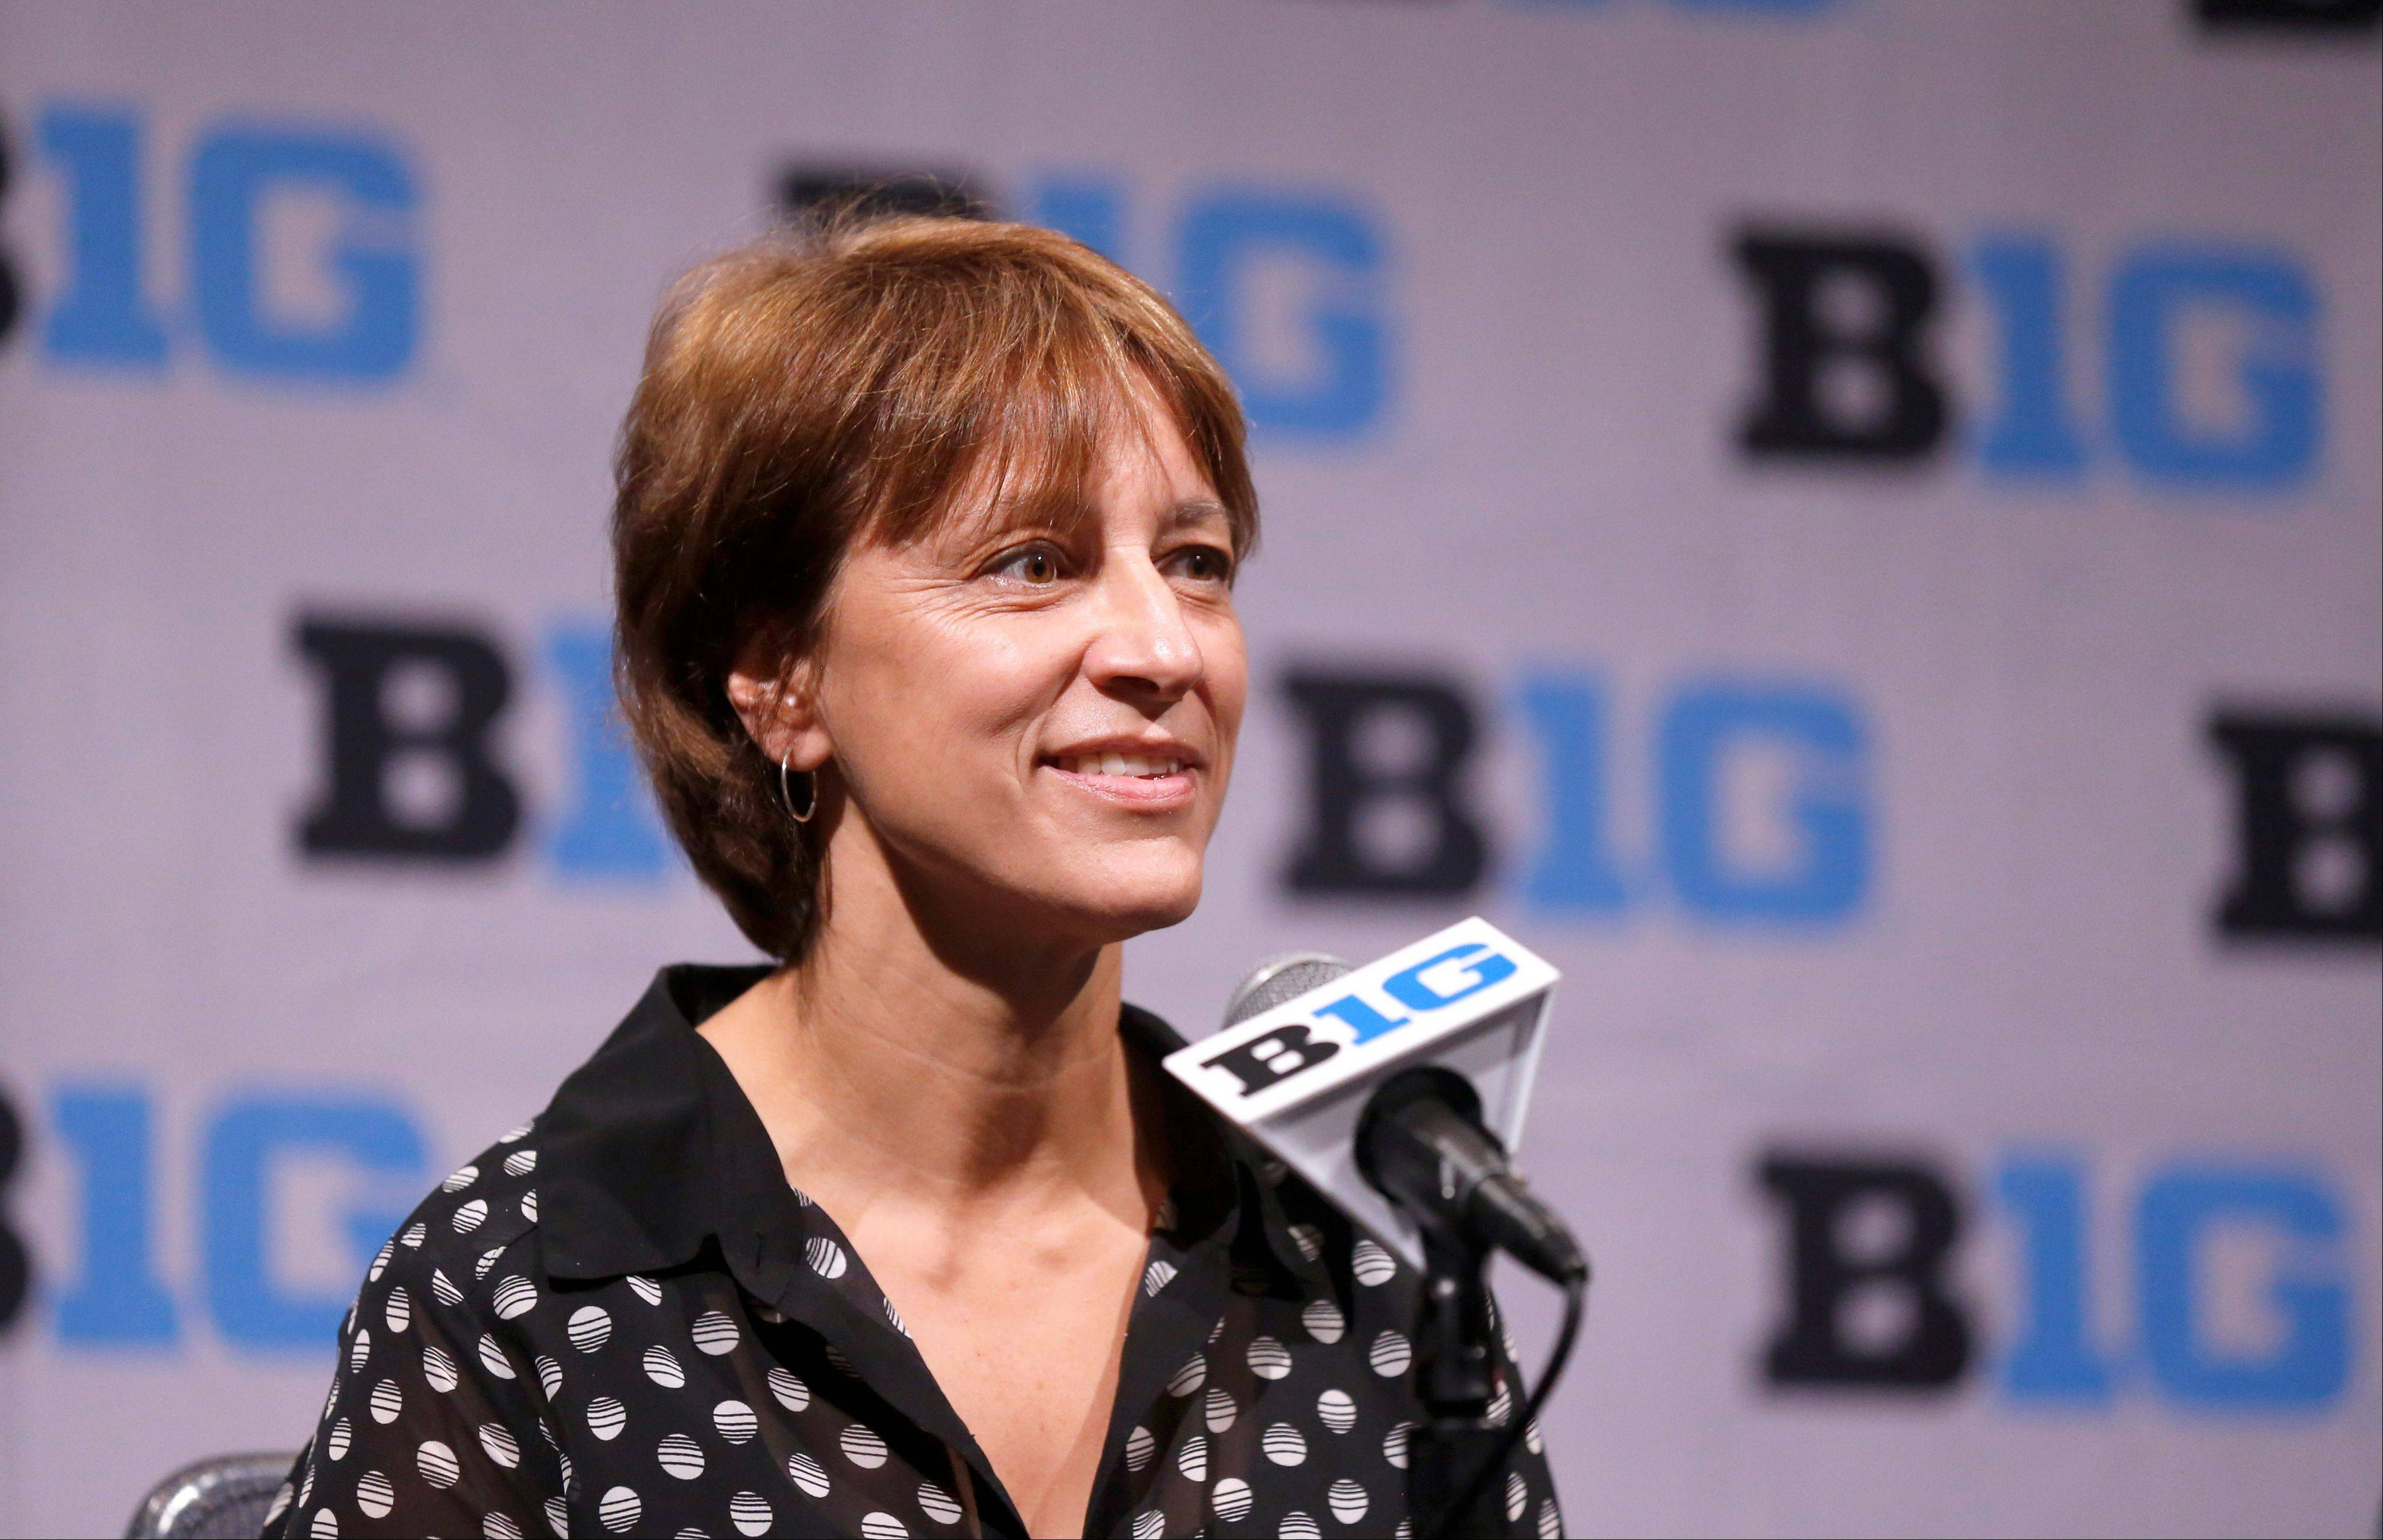 Nebraska women's basketball coach Connie Yori listens to a question during the Big Ten's basketball media day on Thursday in Rosemont. The Cornhuskers return four starters this season.